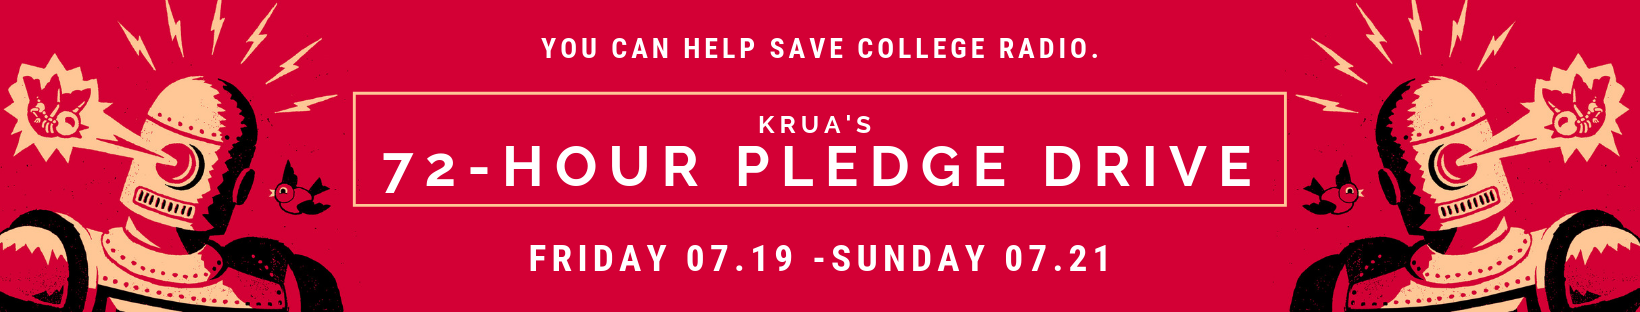 KRUA's 72-Hour pledge drive.png